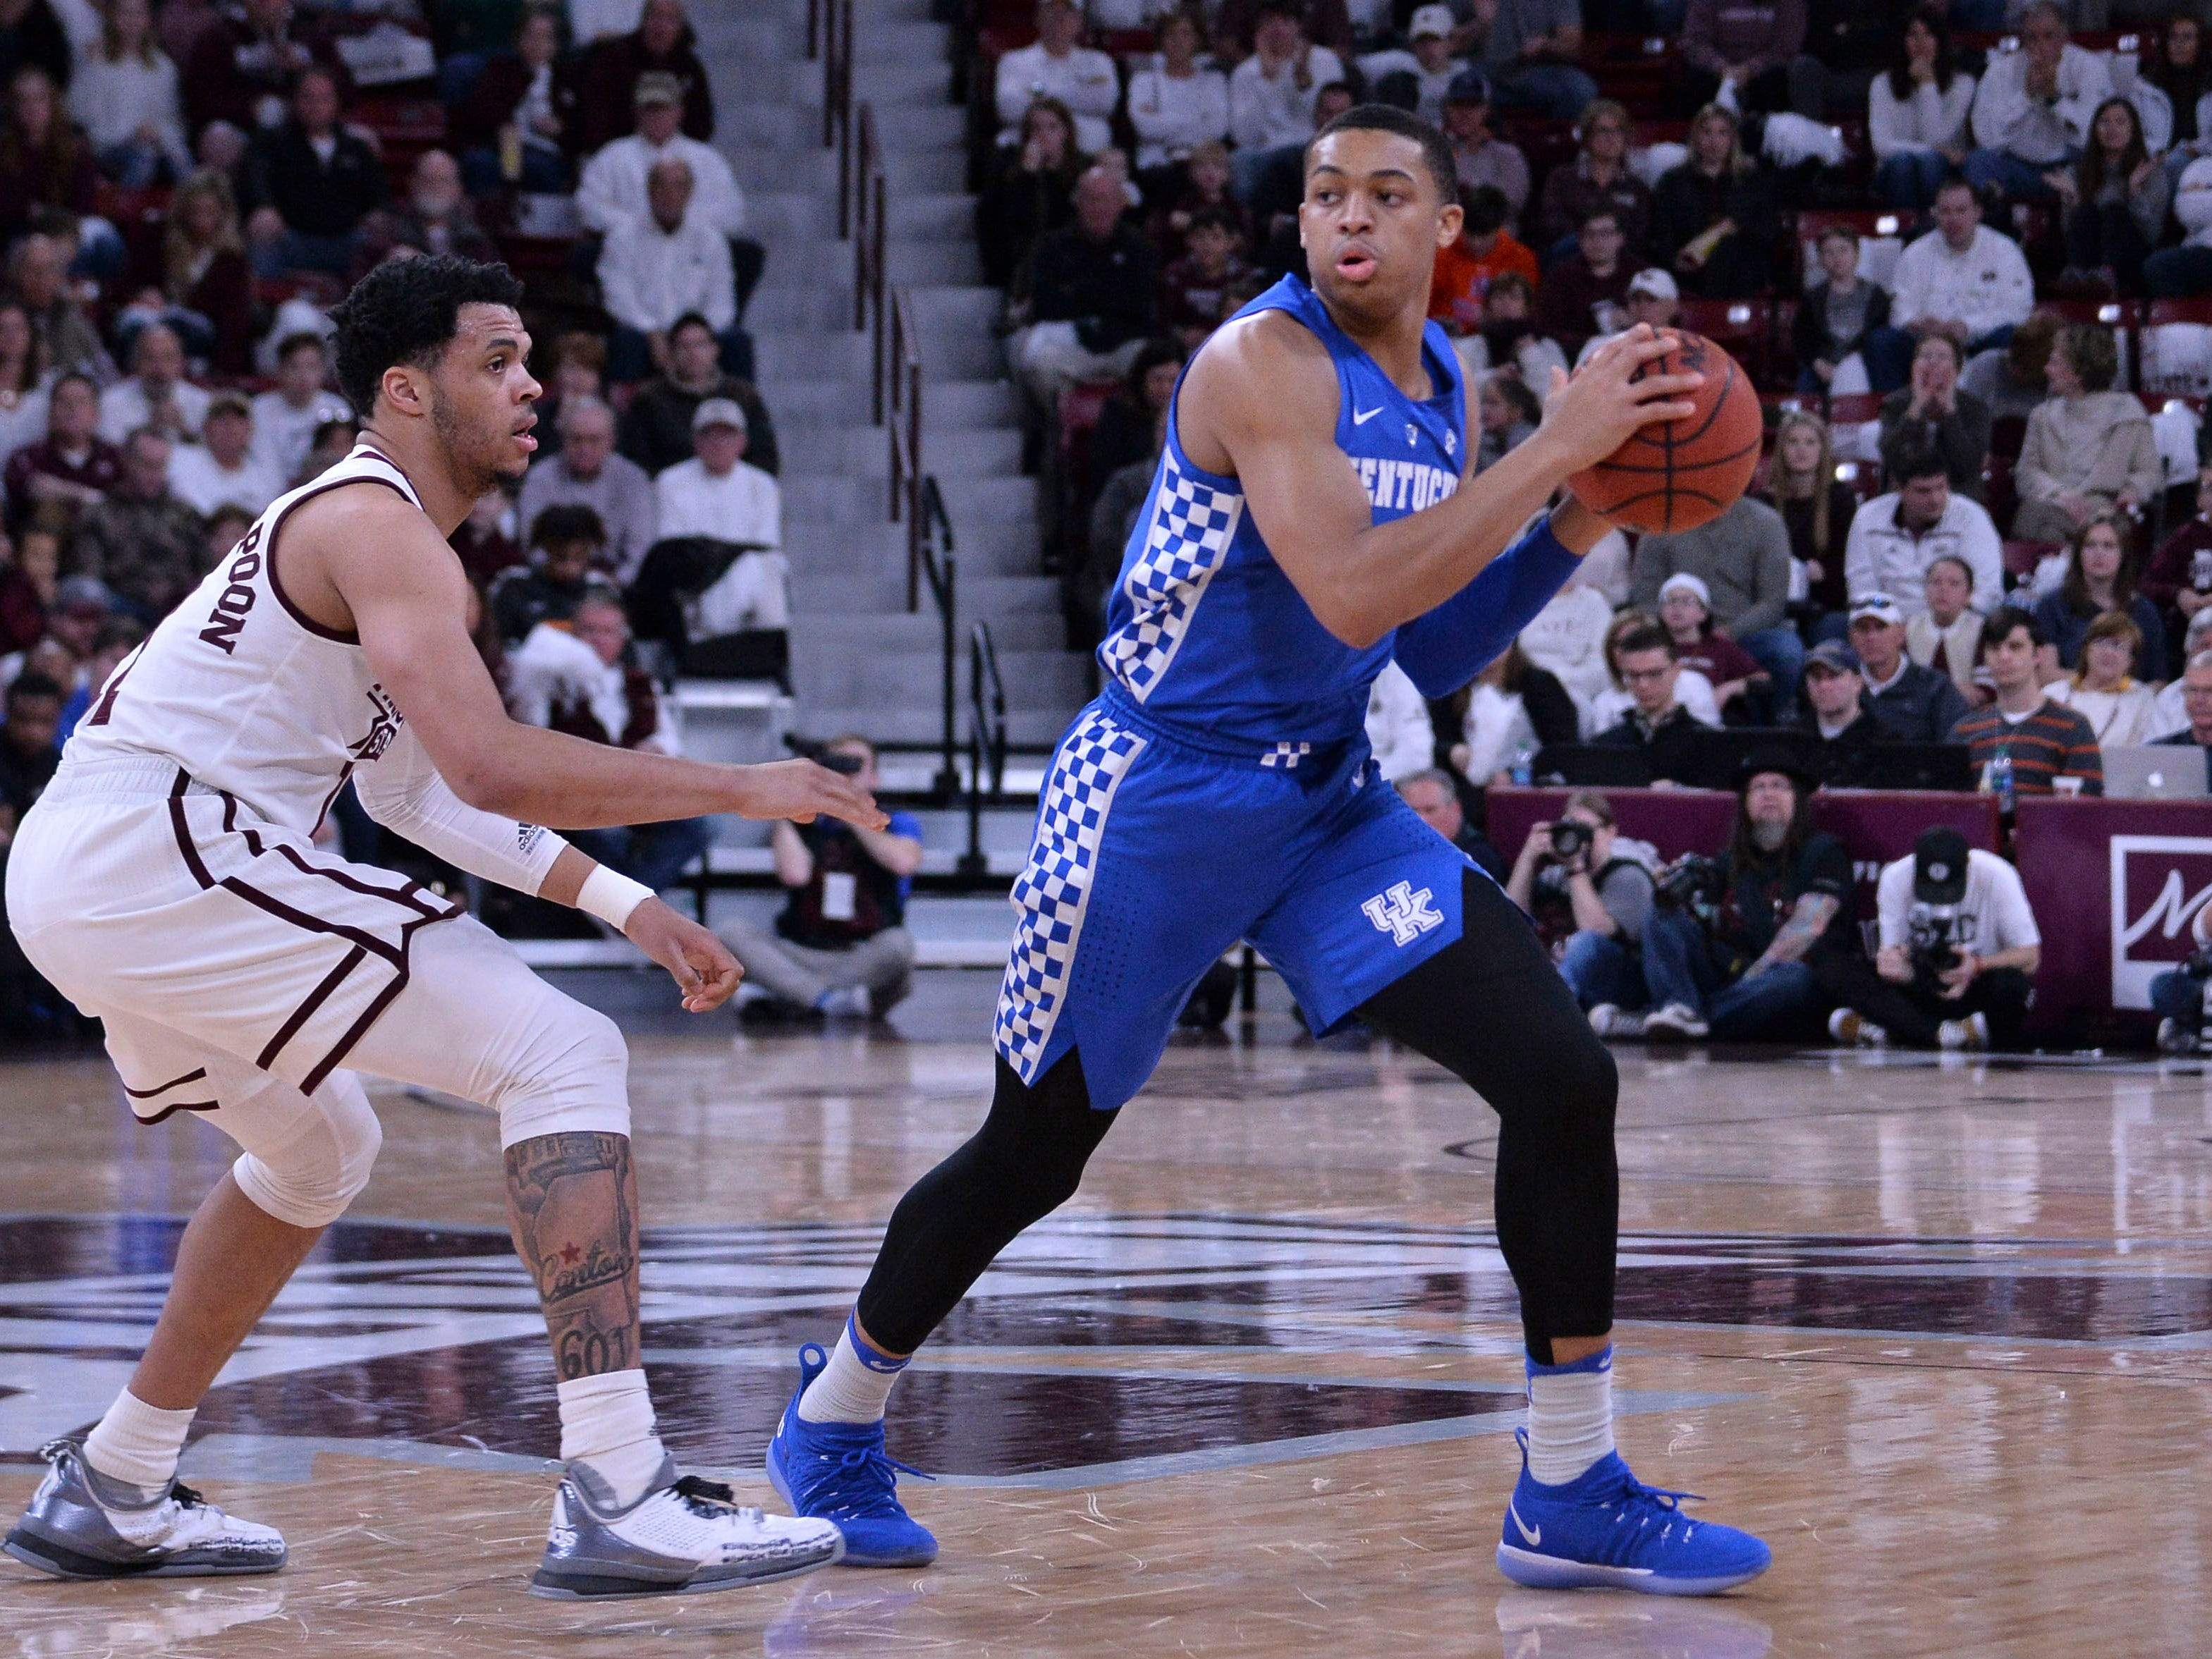 Kentucky Wildcats guard Keldon Johnson (3) handles the ball against Mississippi State Bulldogs guard Quinndary Weatherspoon (11) during the first half at Humphrey Coliseum in Starkville, Mississippi, on Saturday, Feb. 9, 2019.